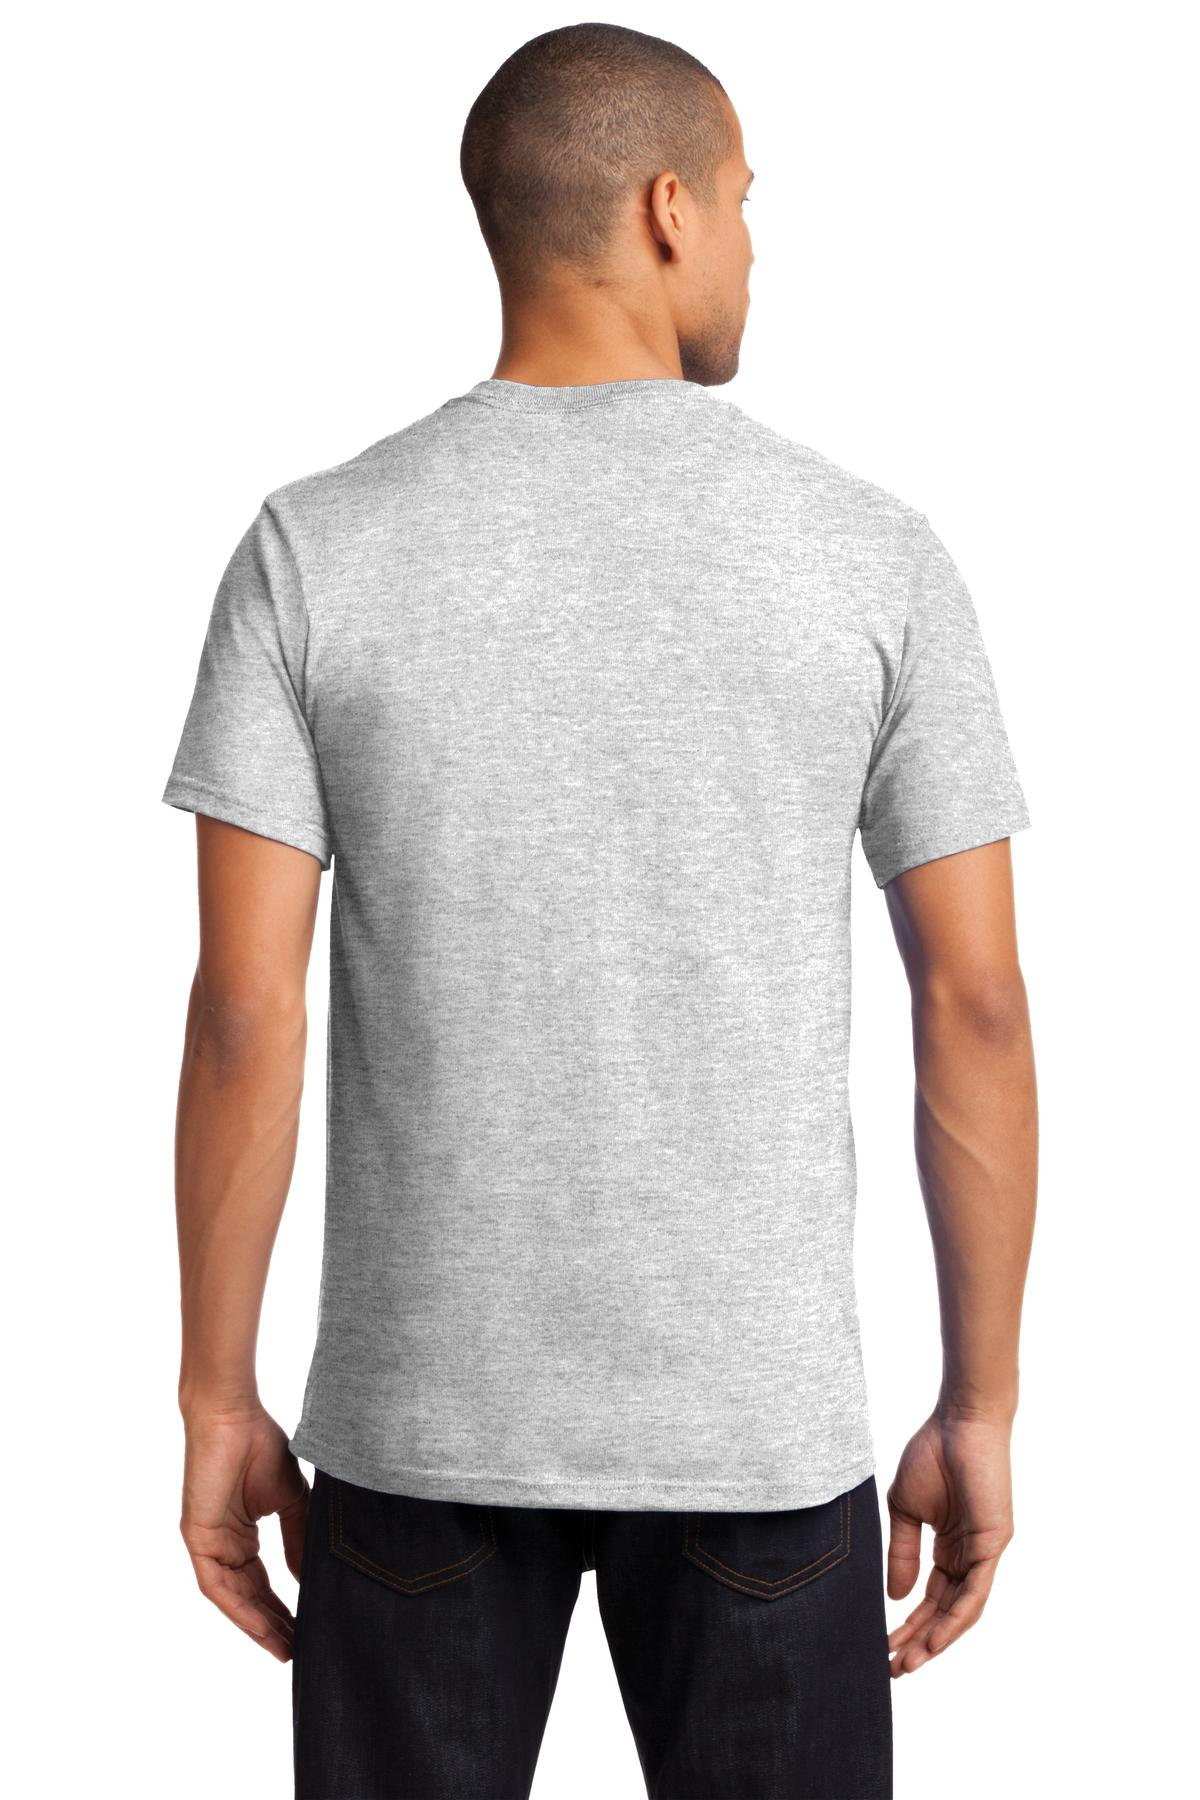 Port-amp-Company-Tall-Essential-TShirt-with-Pocket-PC61PT-Size-LT-4XLT thumbnail 4